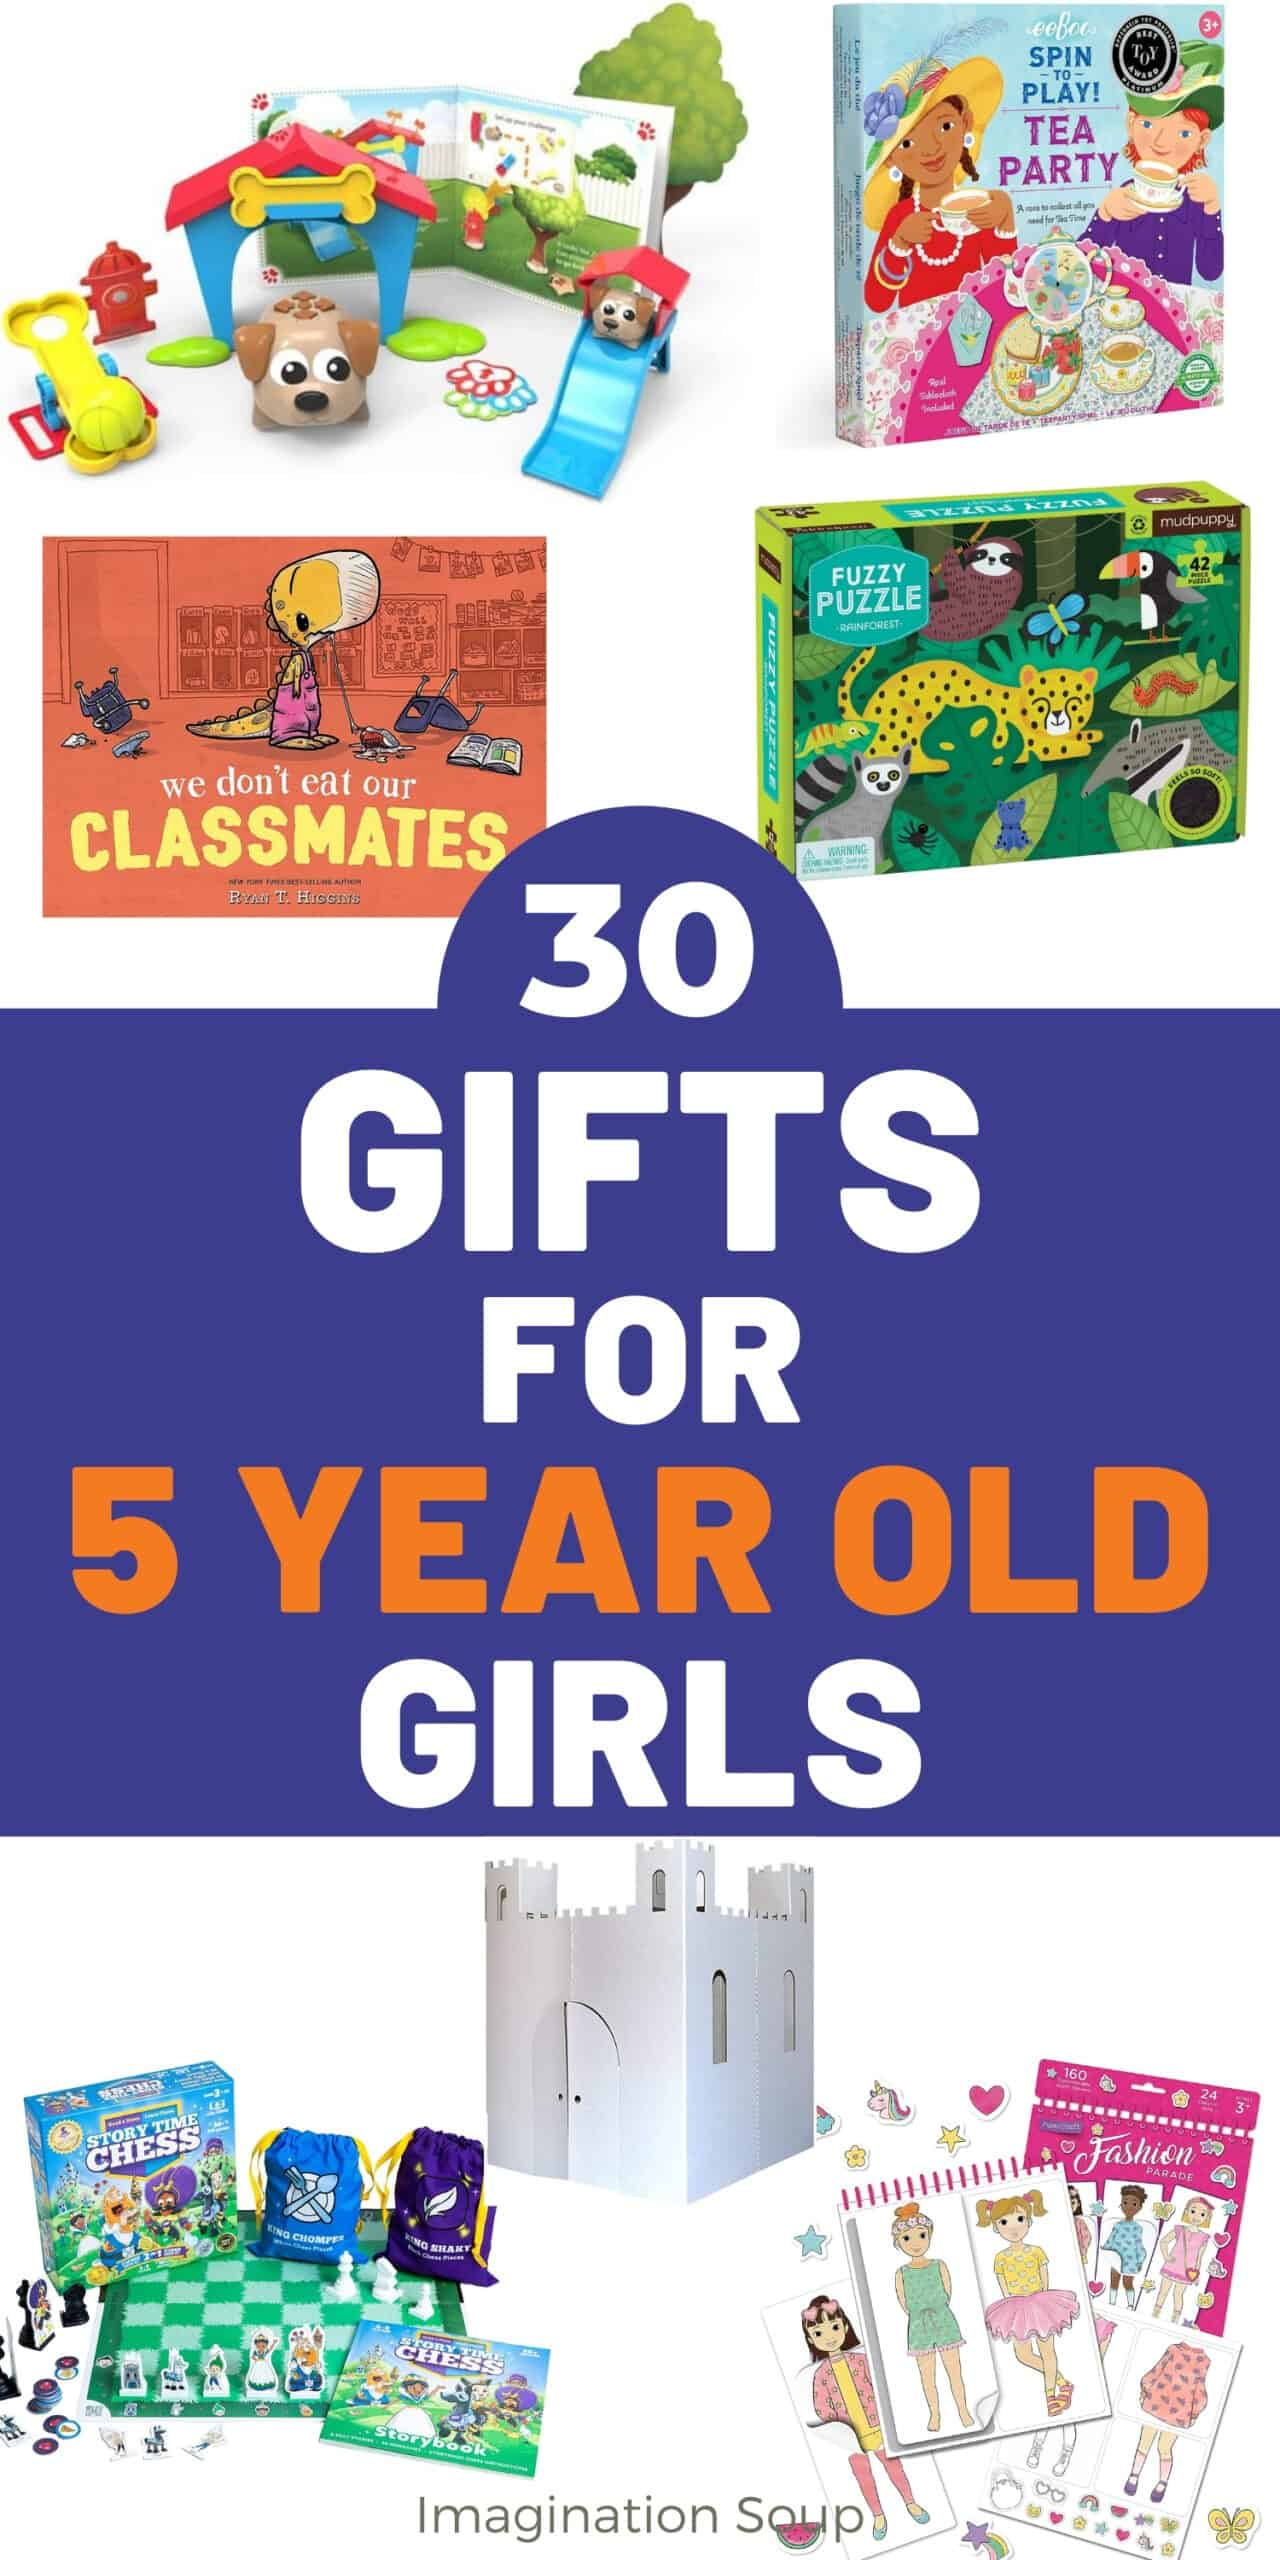 toys and gifts for 5 year old girls